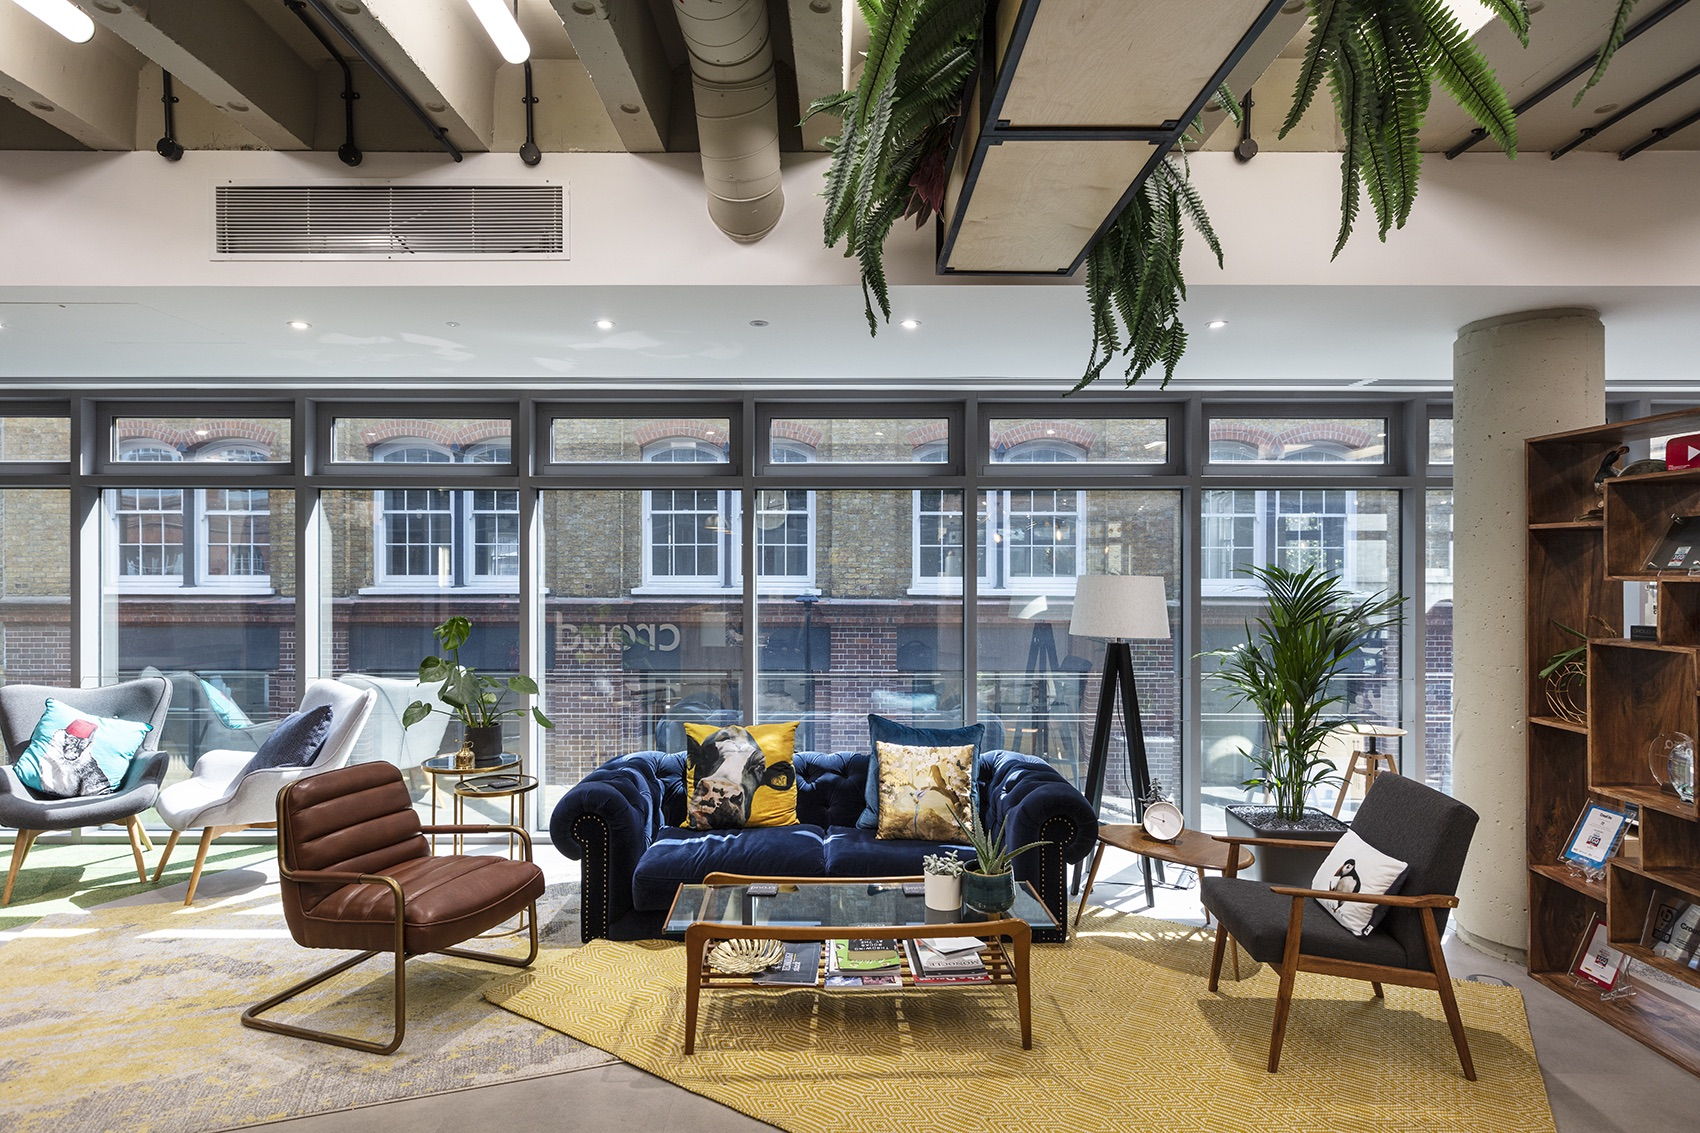 croud-london-office-8